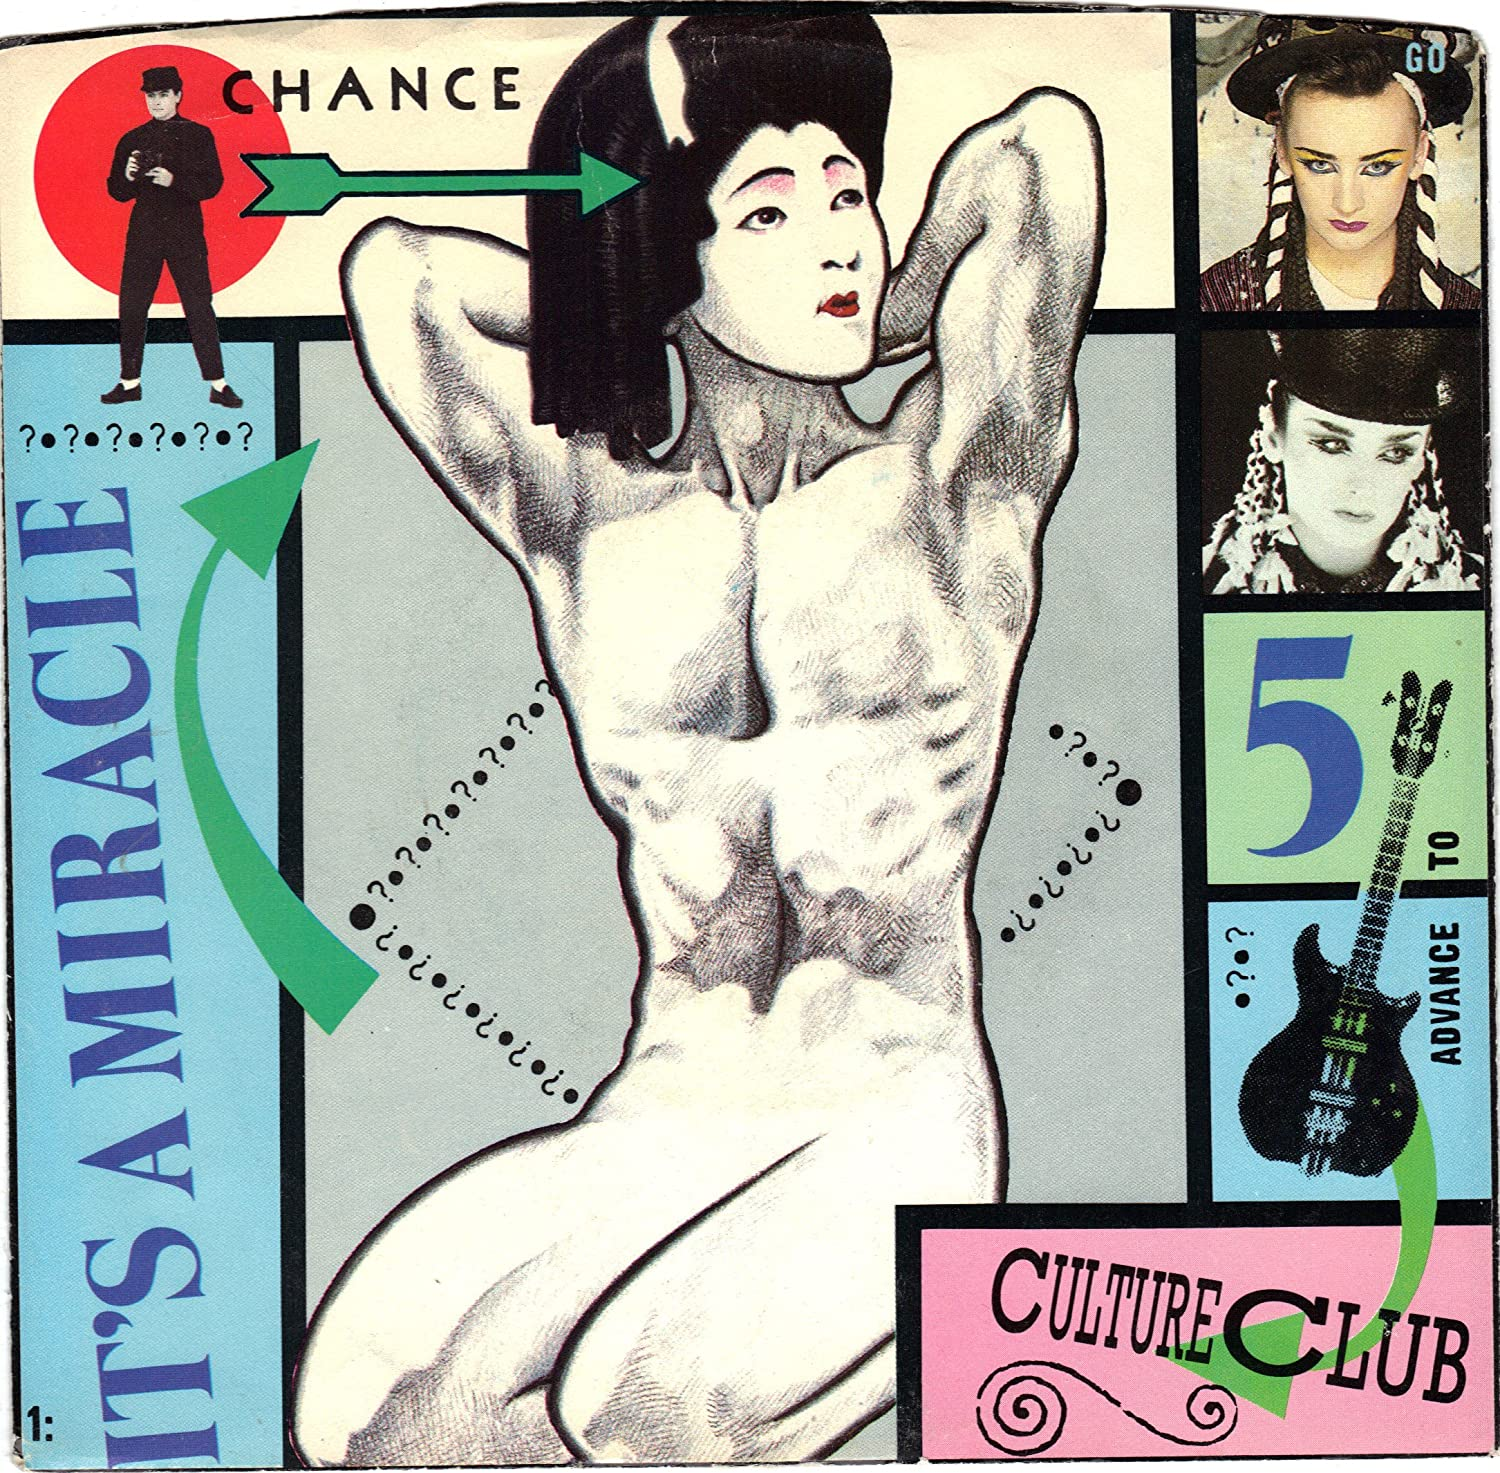 CULTURE CLUB / It's A Miracle / 45rpm record + picture sleeve